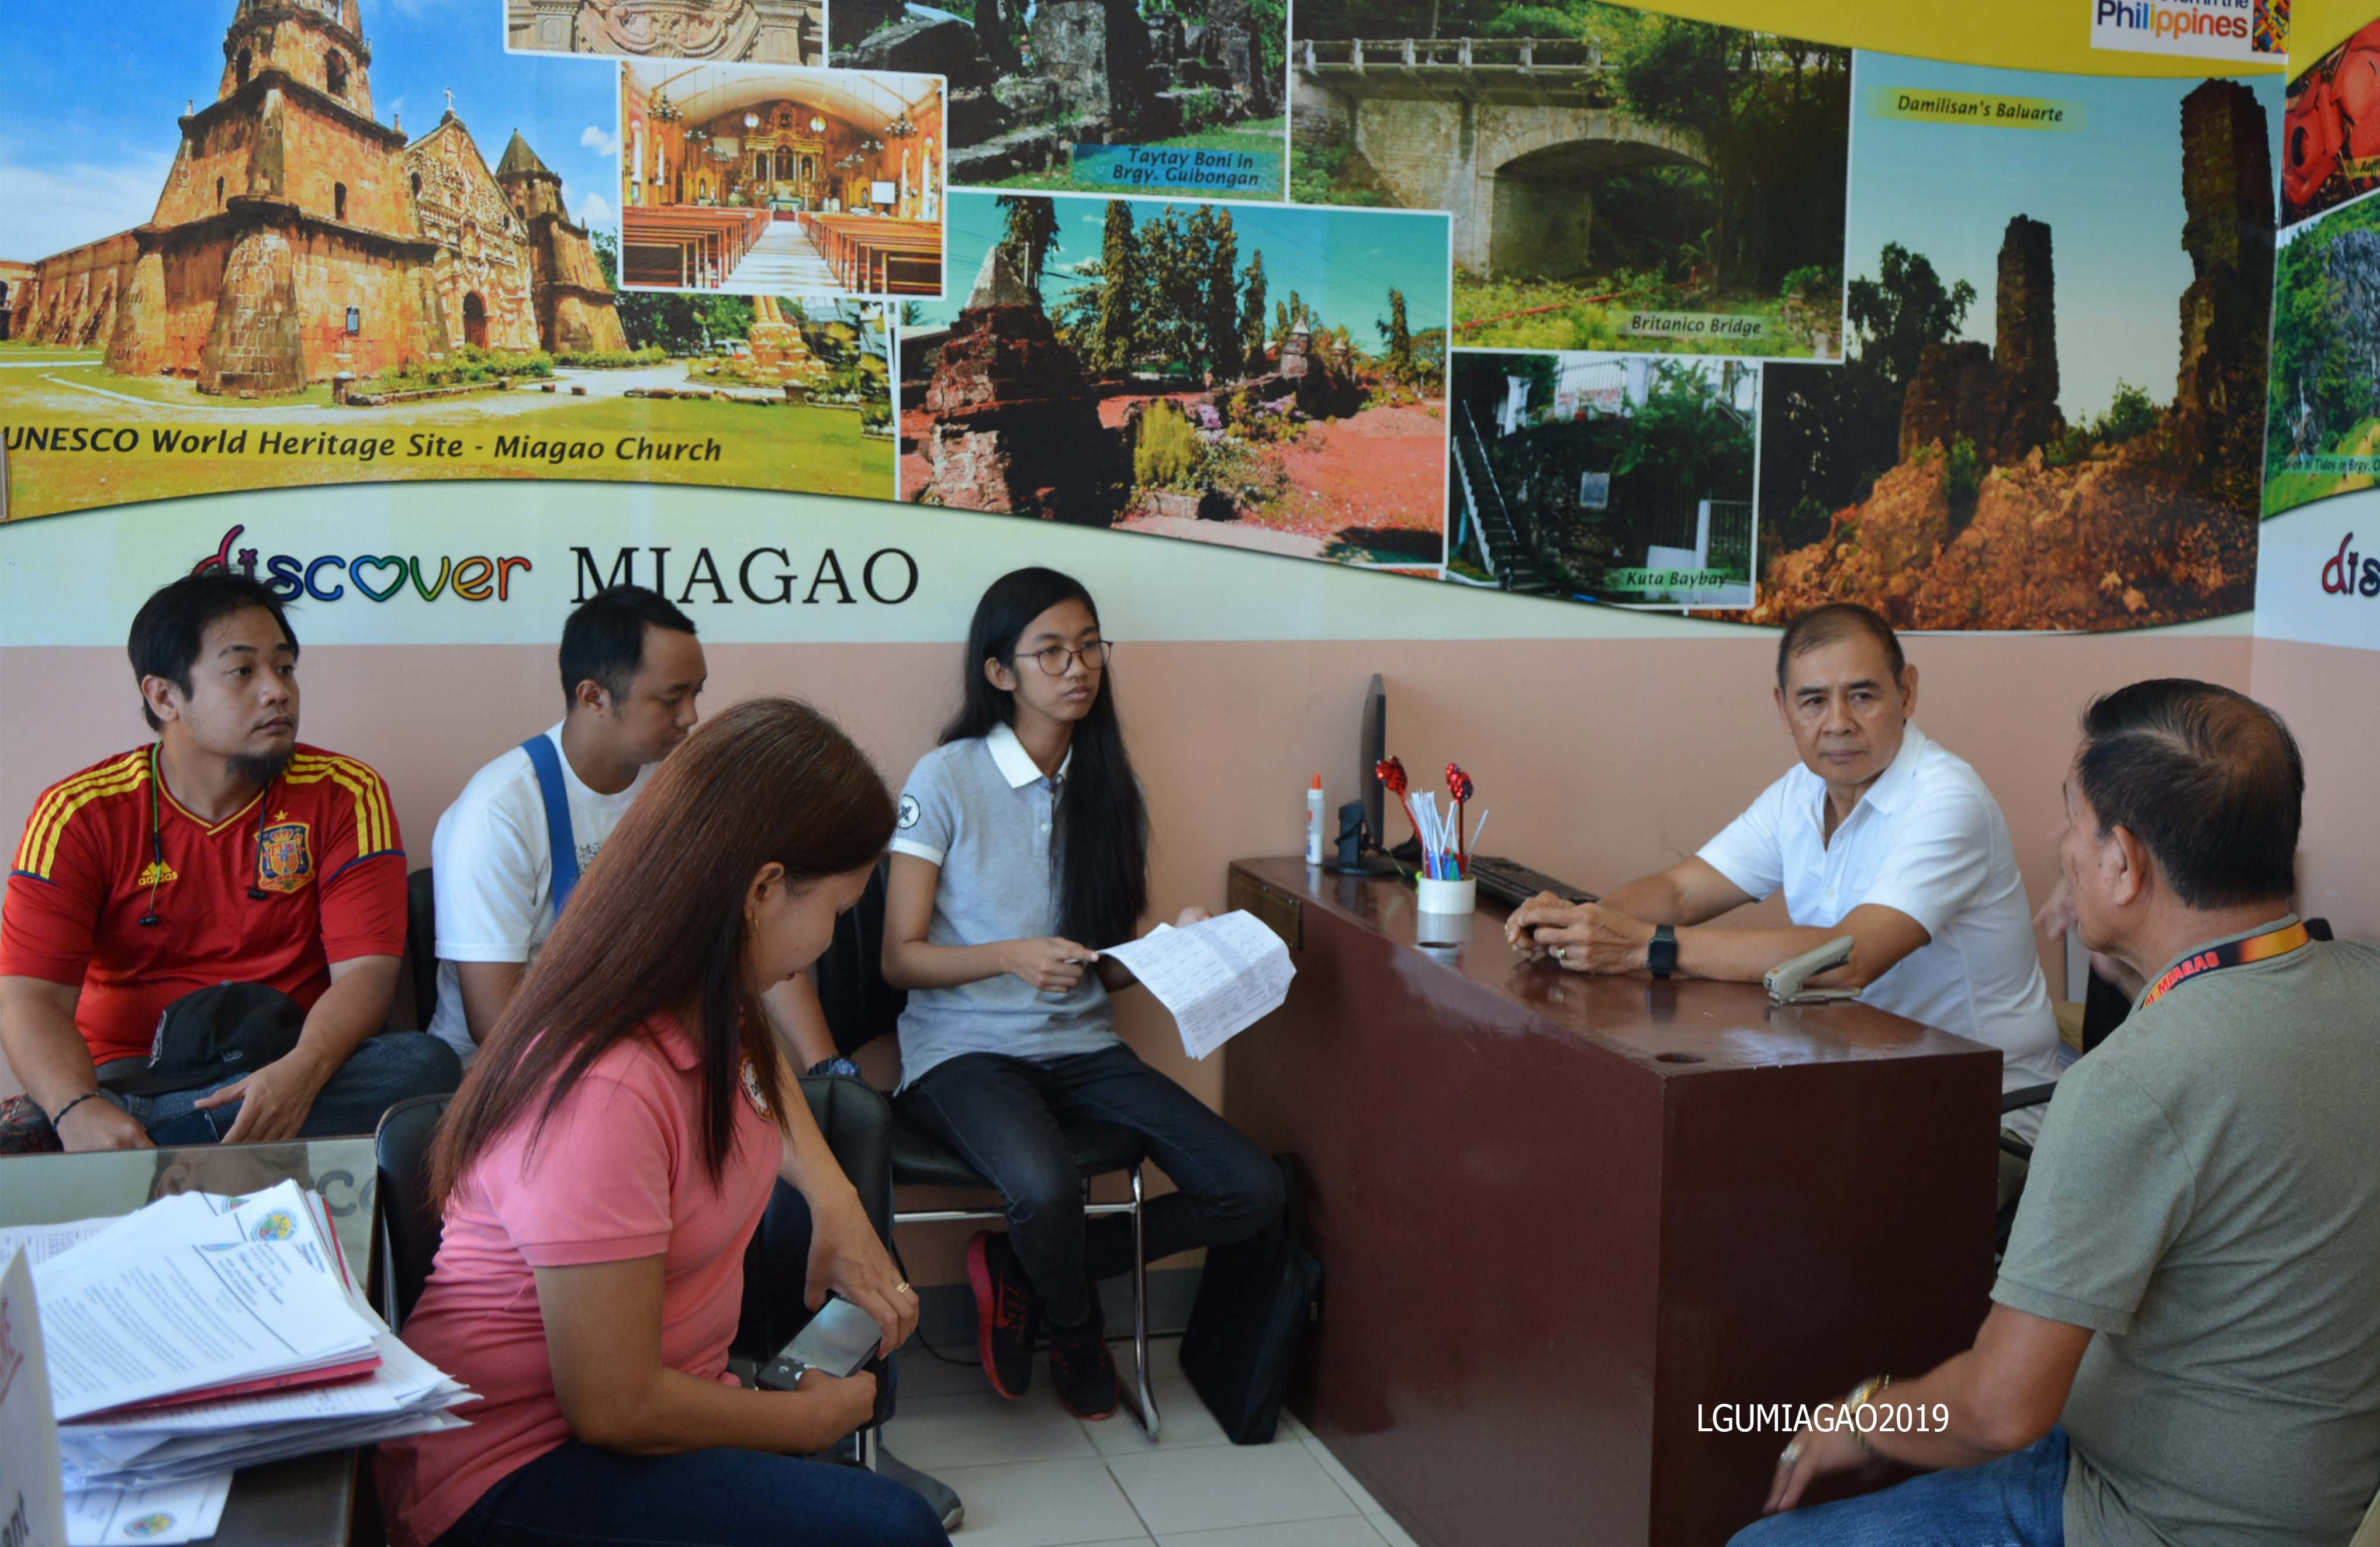 Municipality of Miagao | Official Homepage of the Municipality of Miagao